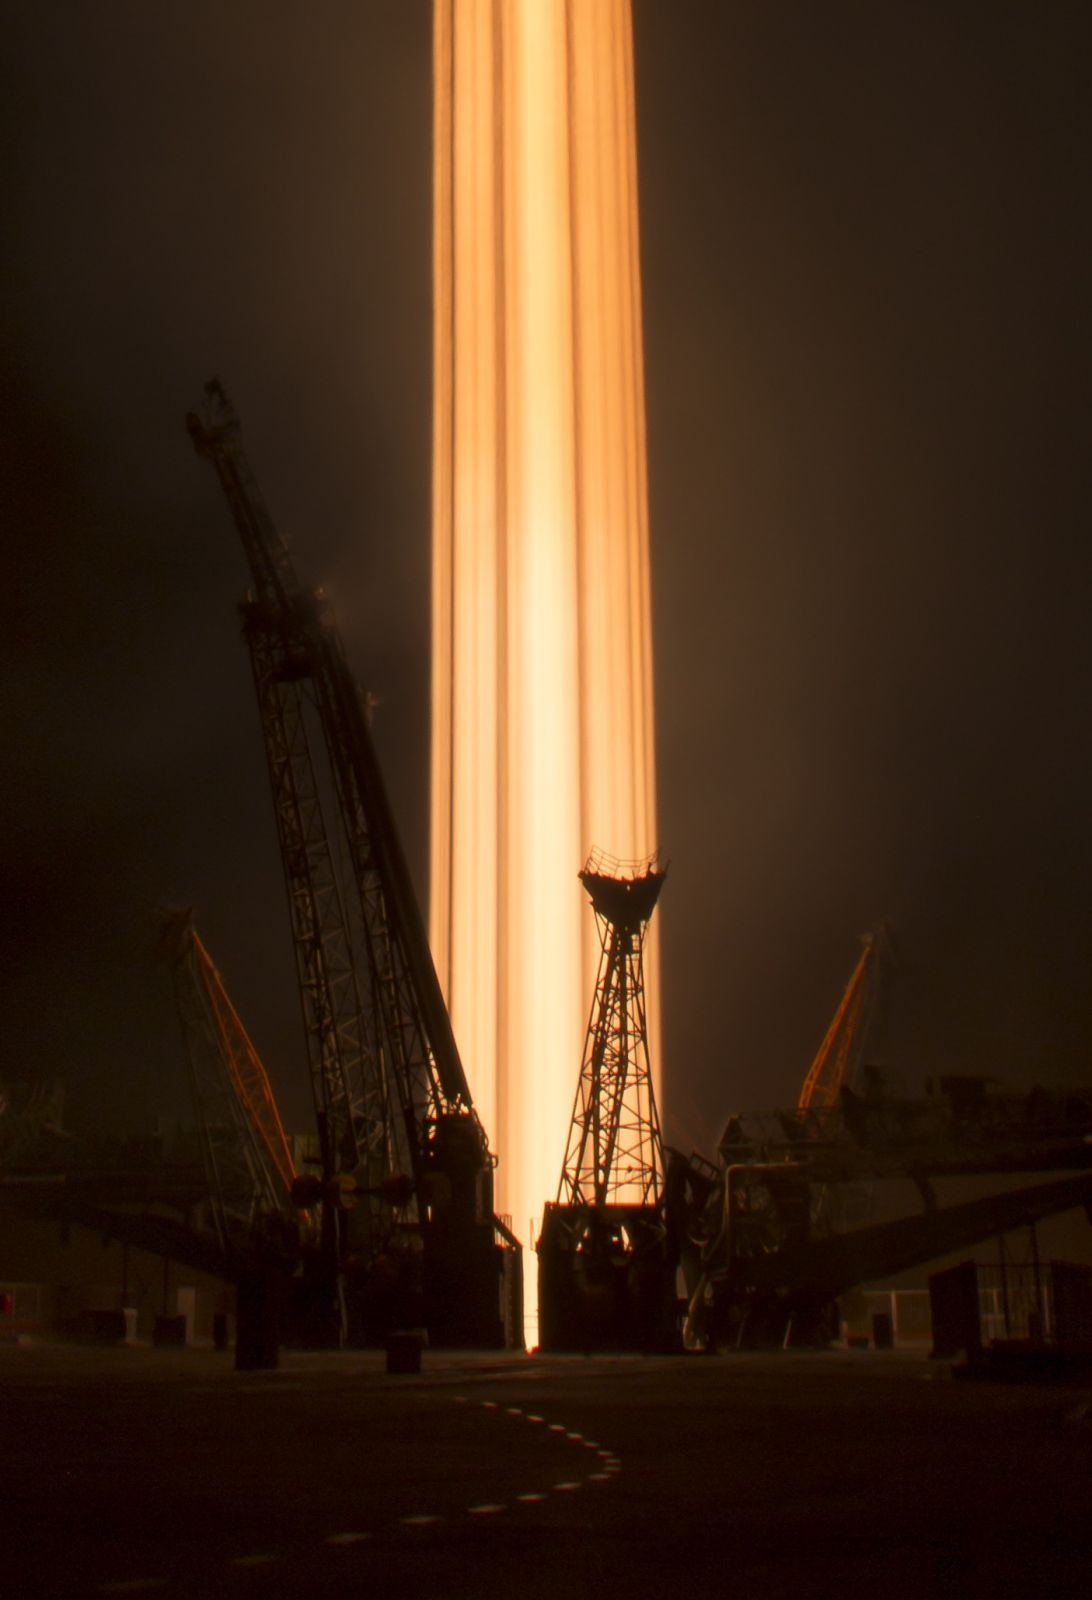 Pillar of light: The Soyuz rockets skyward in this long exposure picture. Photo Credit: Bill Ingalls / NASA